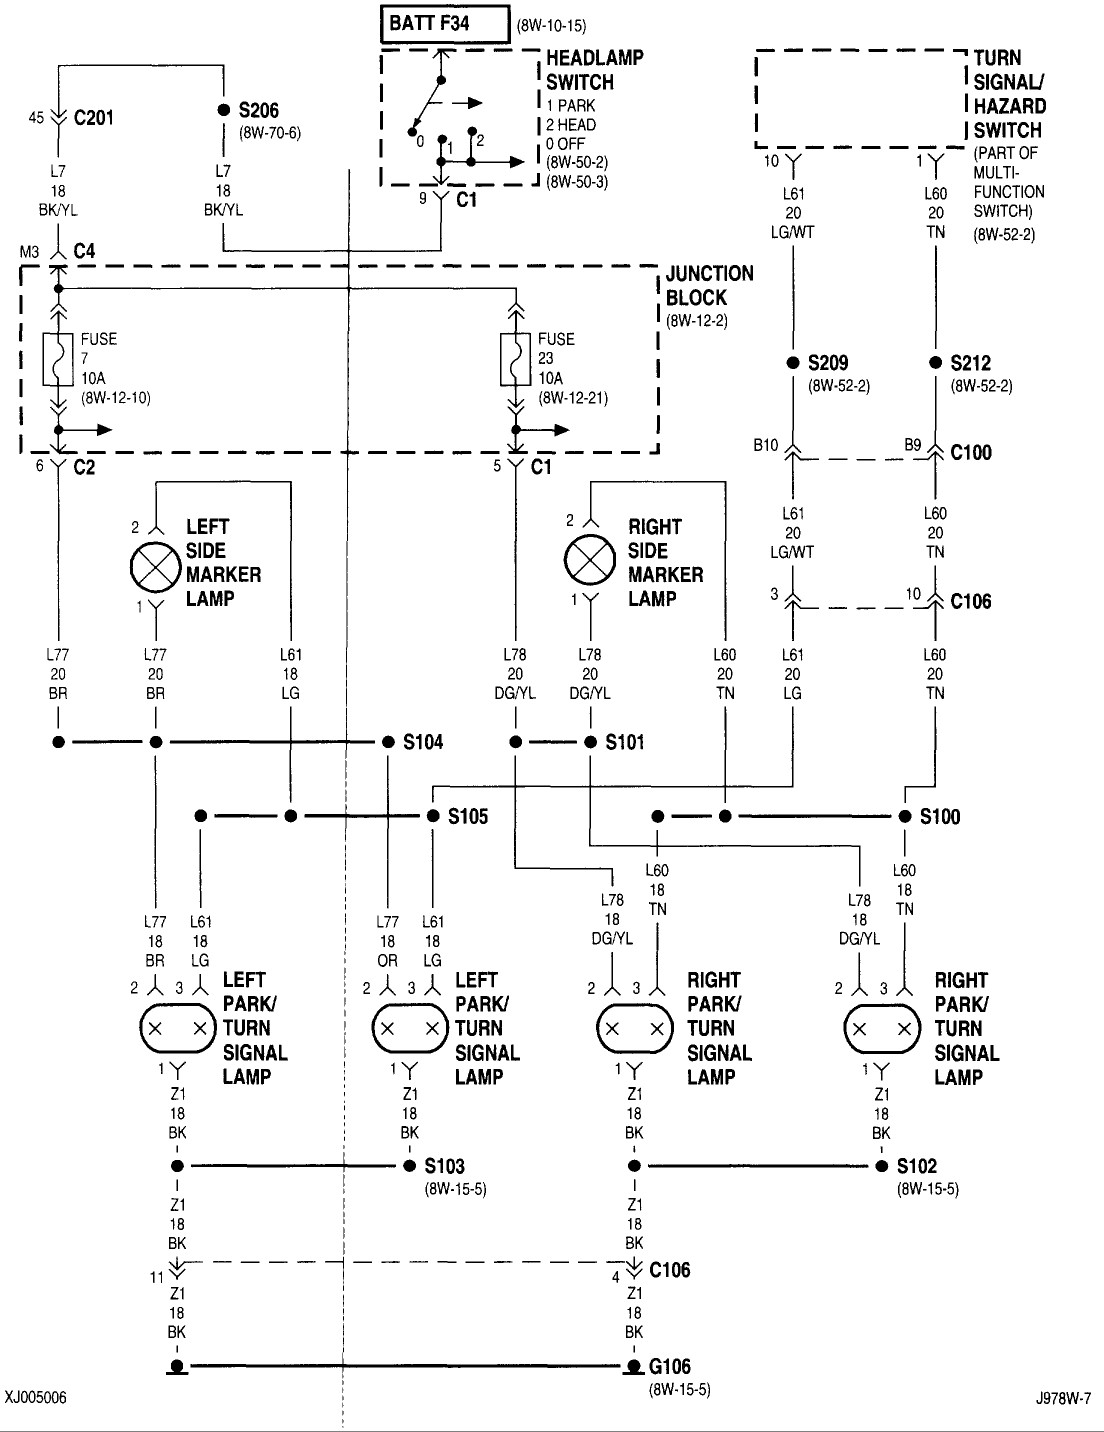 [SCHEMATICS_4PO]  2003 Jeep Liberty Headlight Wiring - Ford Factory Stereo Wiring Diagram for Wiring  Diagram Schematics | 03 Jeep Liberty Headlight Wiring |  | Wiring Diagram Schematics